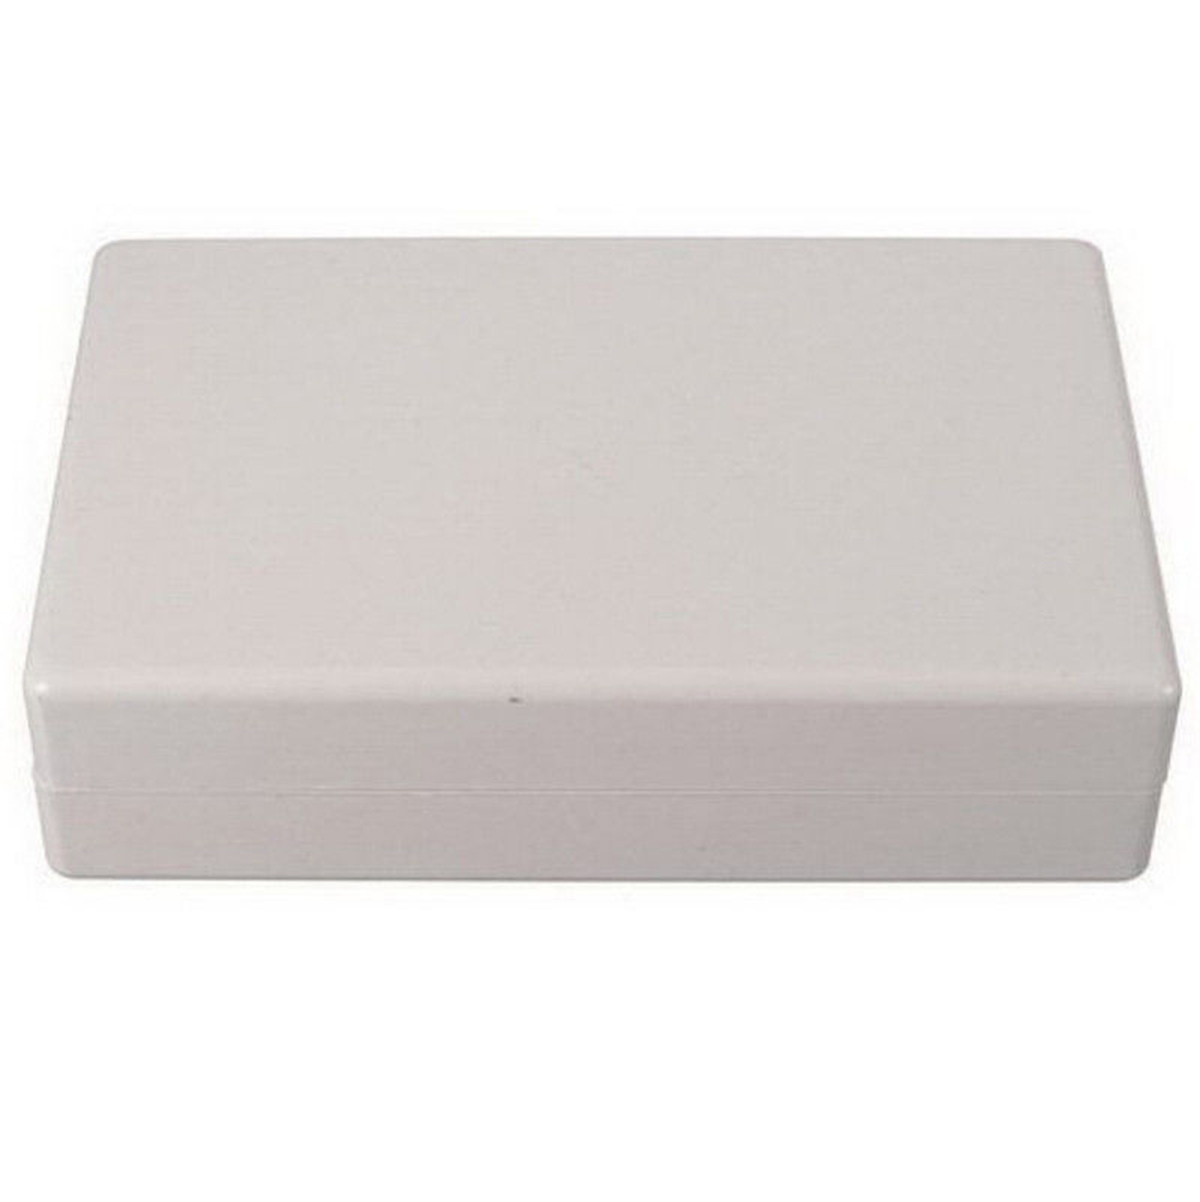 1pc Plastic Electronic Project Case Cover Waterproof Enclosure Box 125x80x32mm Mayitr For Power Supply Units transparent cover enclosure plastic waterproof plastic housing 1 pcs 284 144 90mm distribution box project case